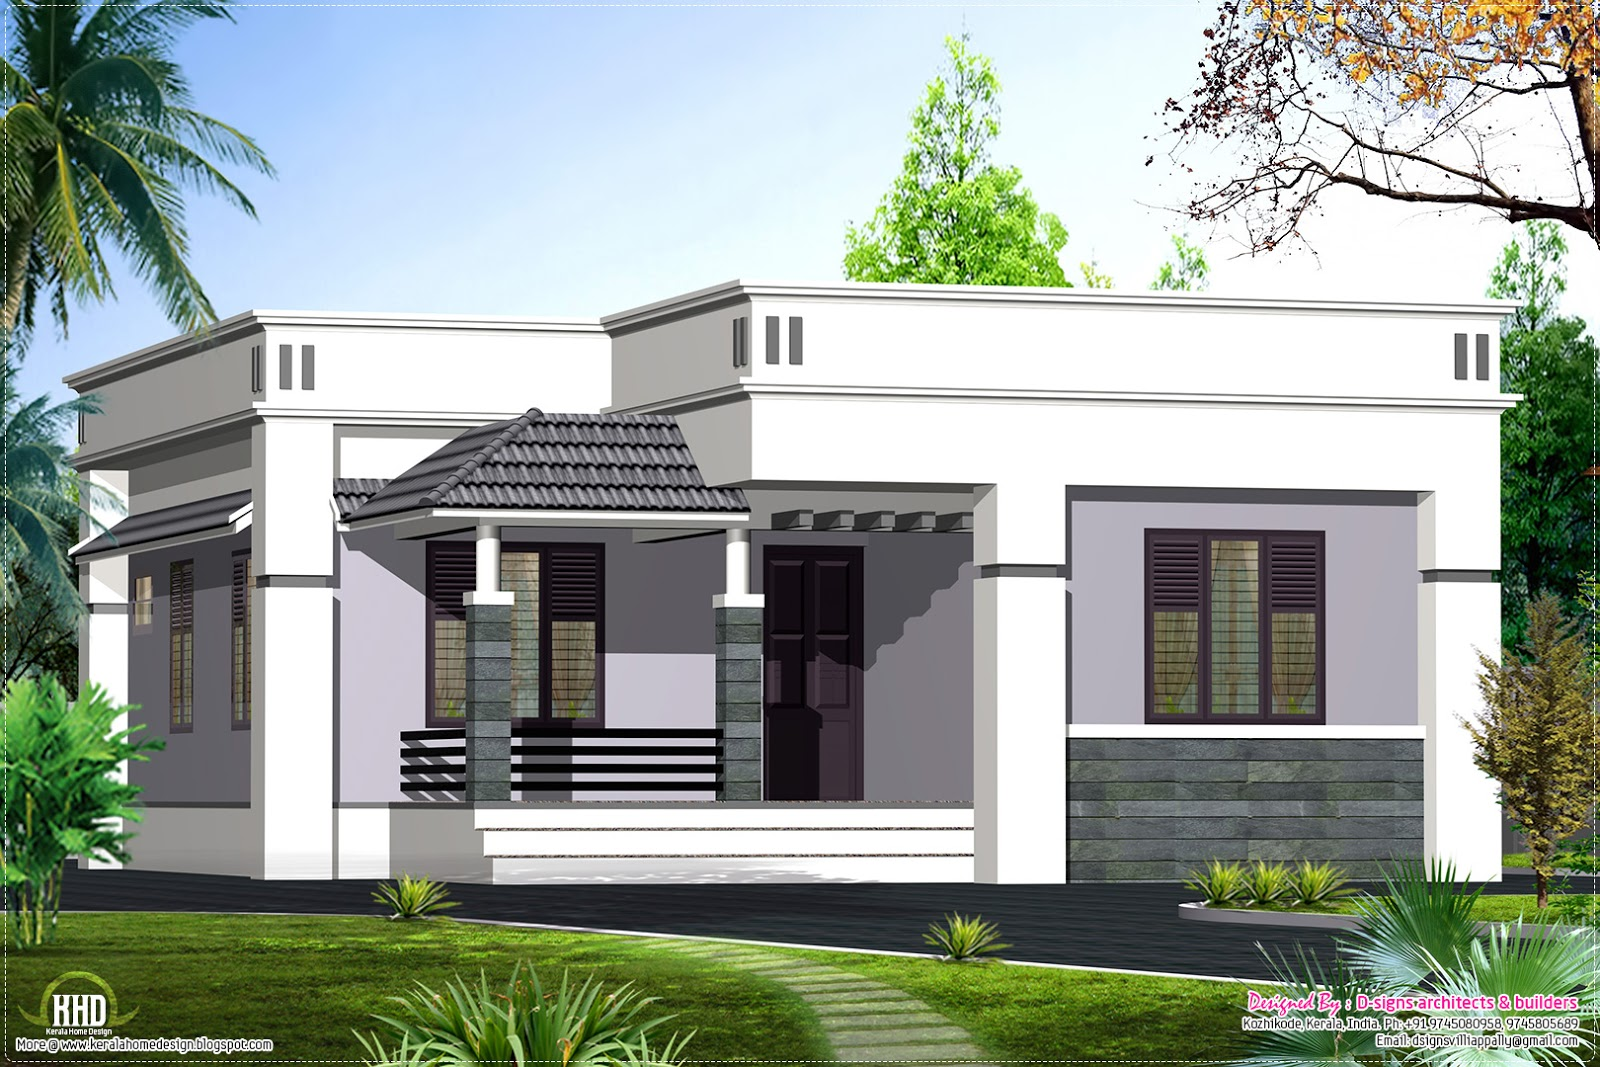 House Desing 35 small and simple but beautiful house with roof deck